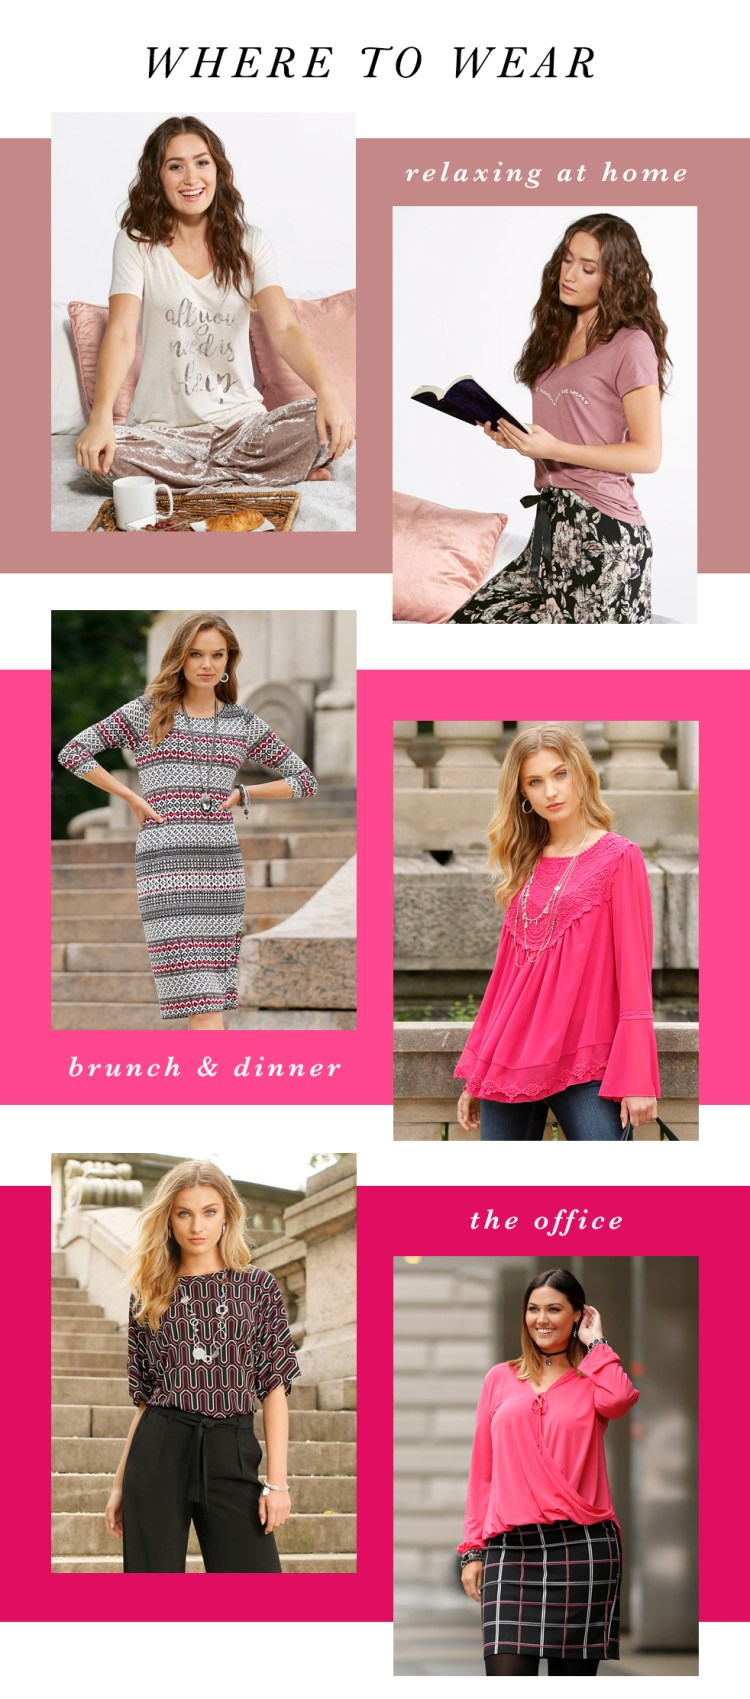 Examples of where to wear your pink: Relaxing at home, brunch and dinner, or the office!